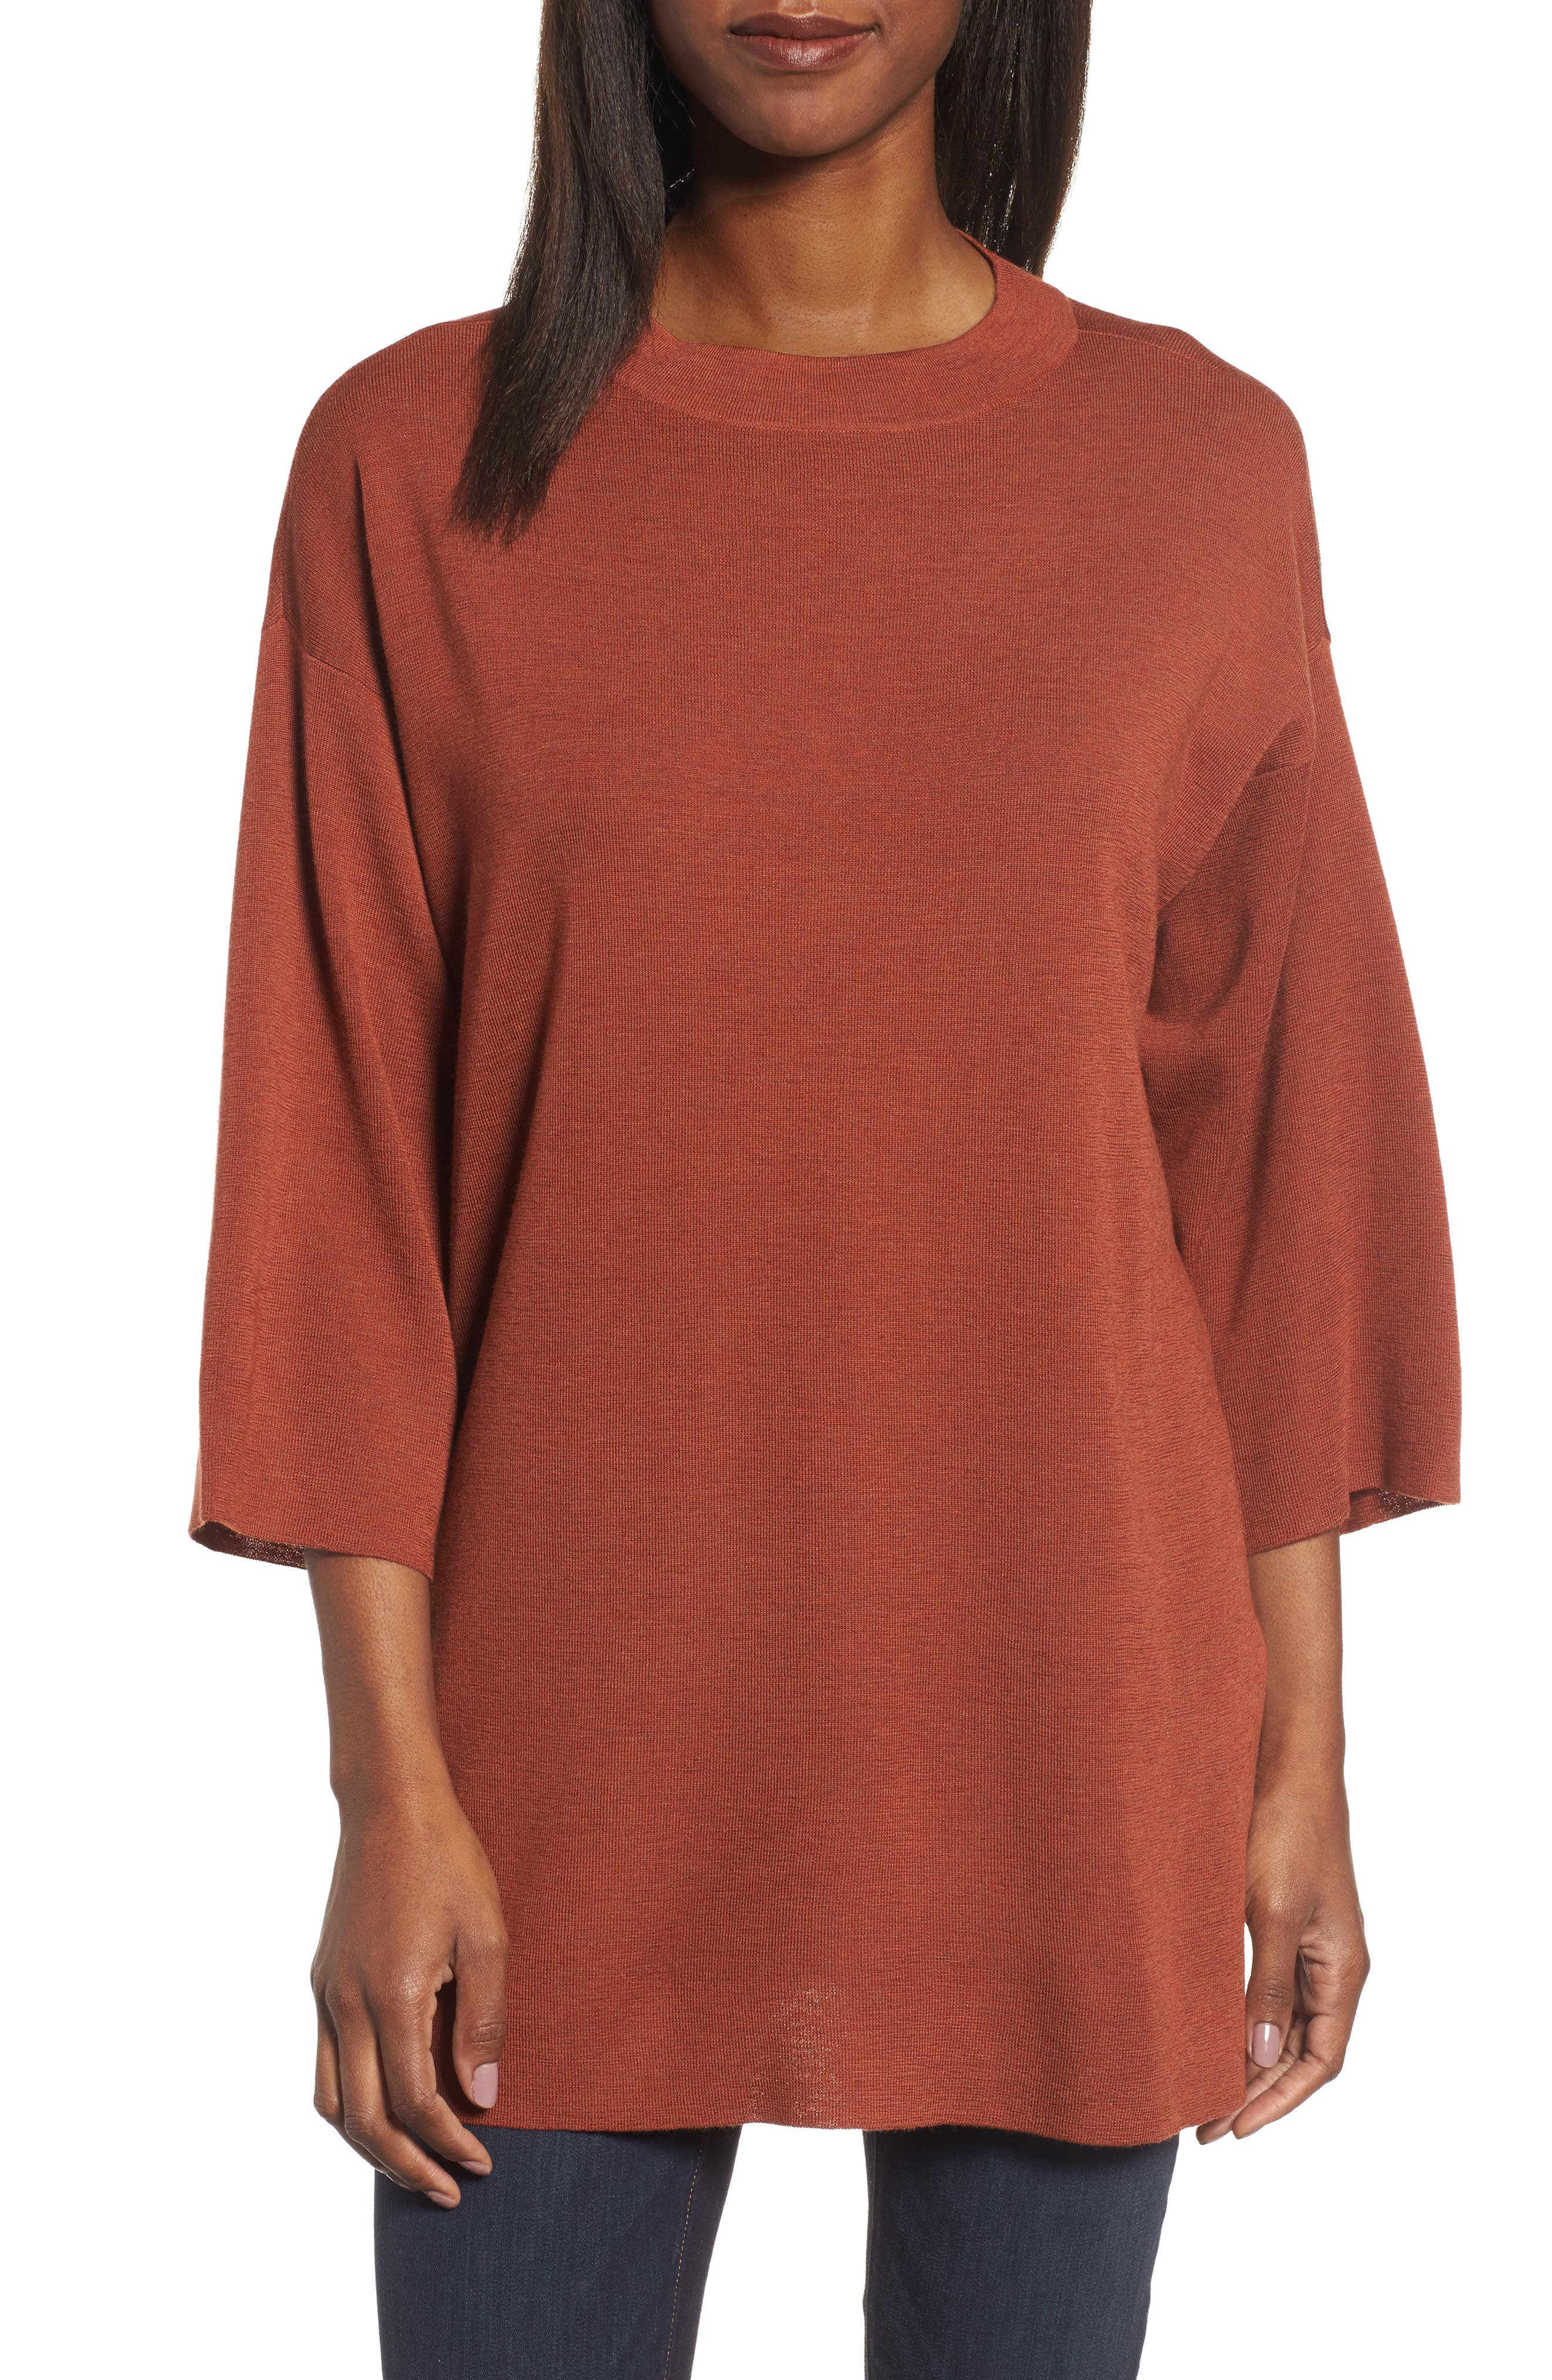 Alternate Image 1 Selected - Eileen Fisher Merino Wool Tunic